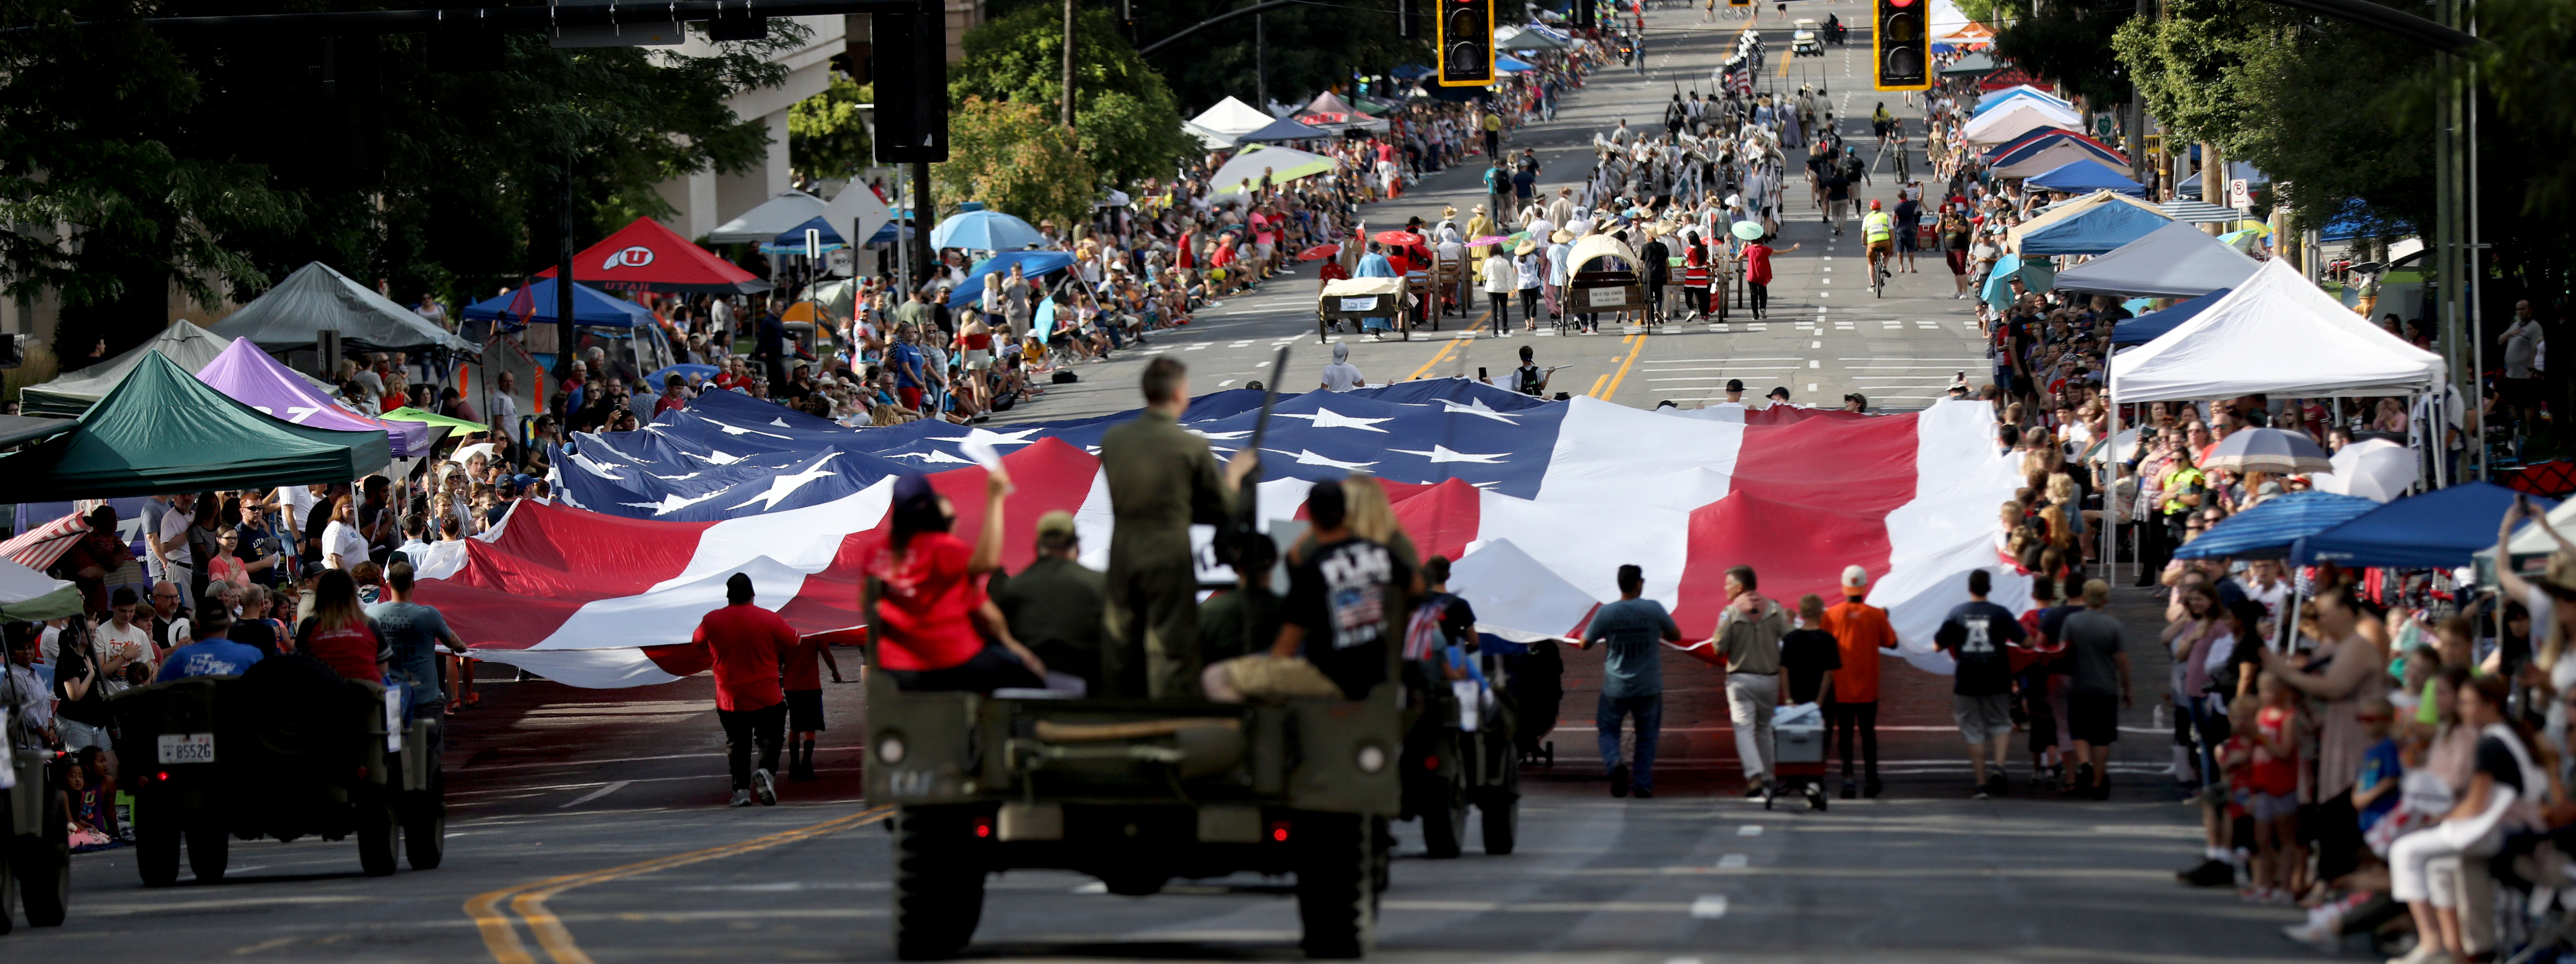 The Days of '47 Parade heads down 200 East in Salt Lake City on Wednesday, July 24, 2019.